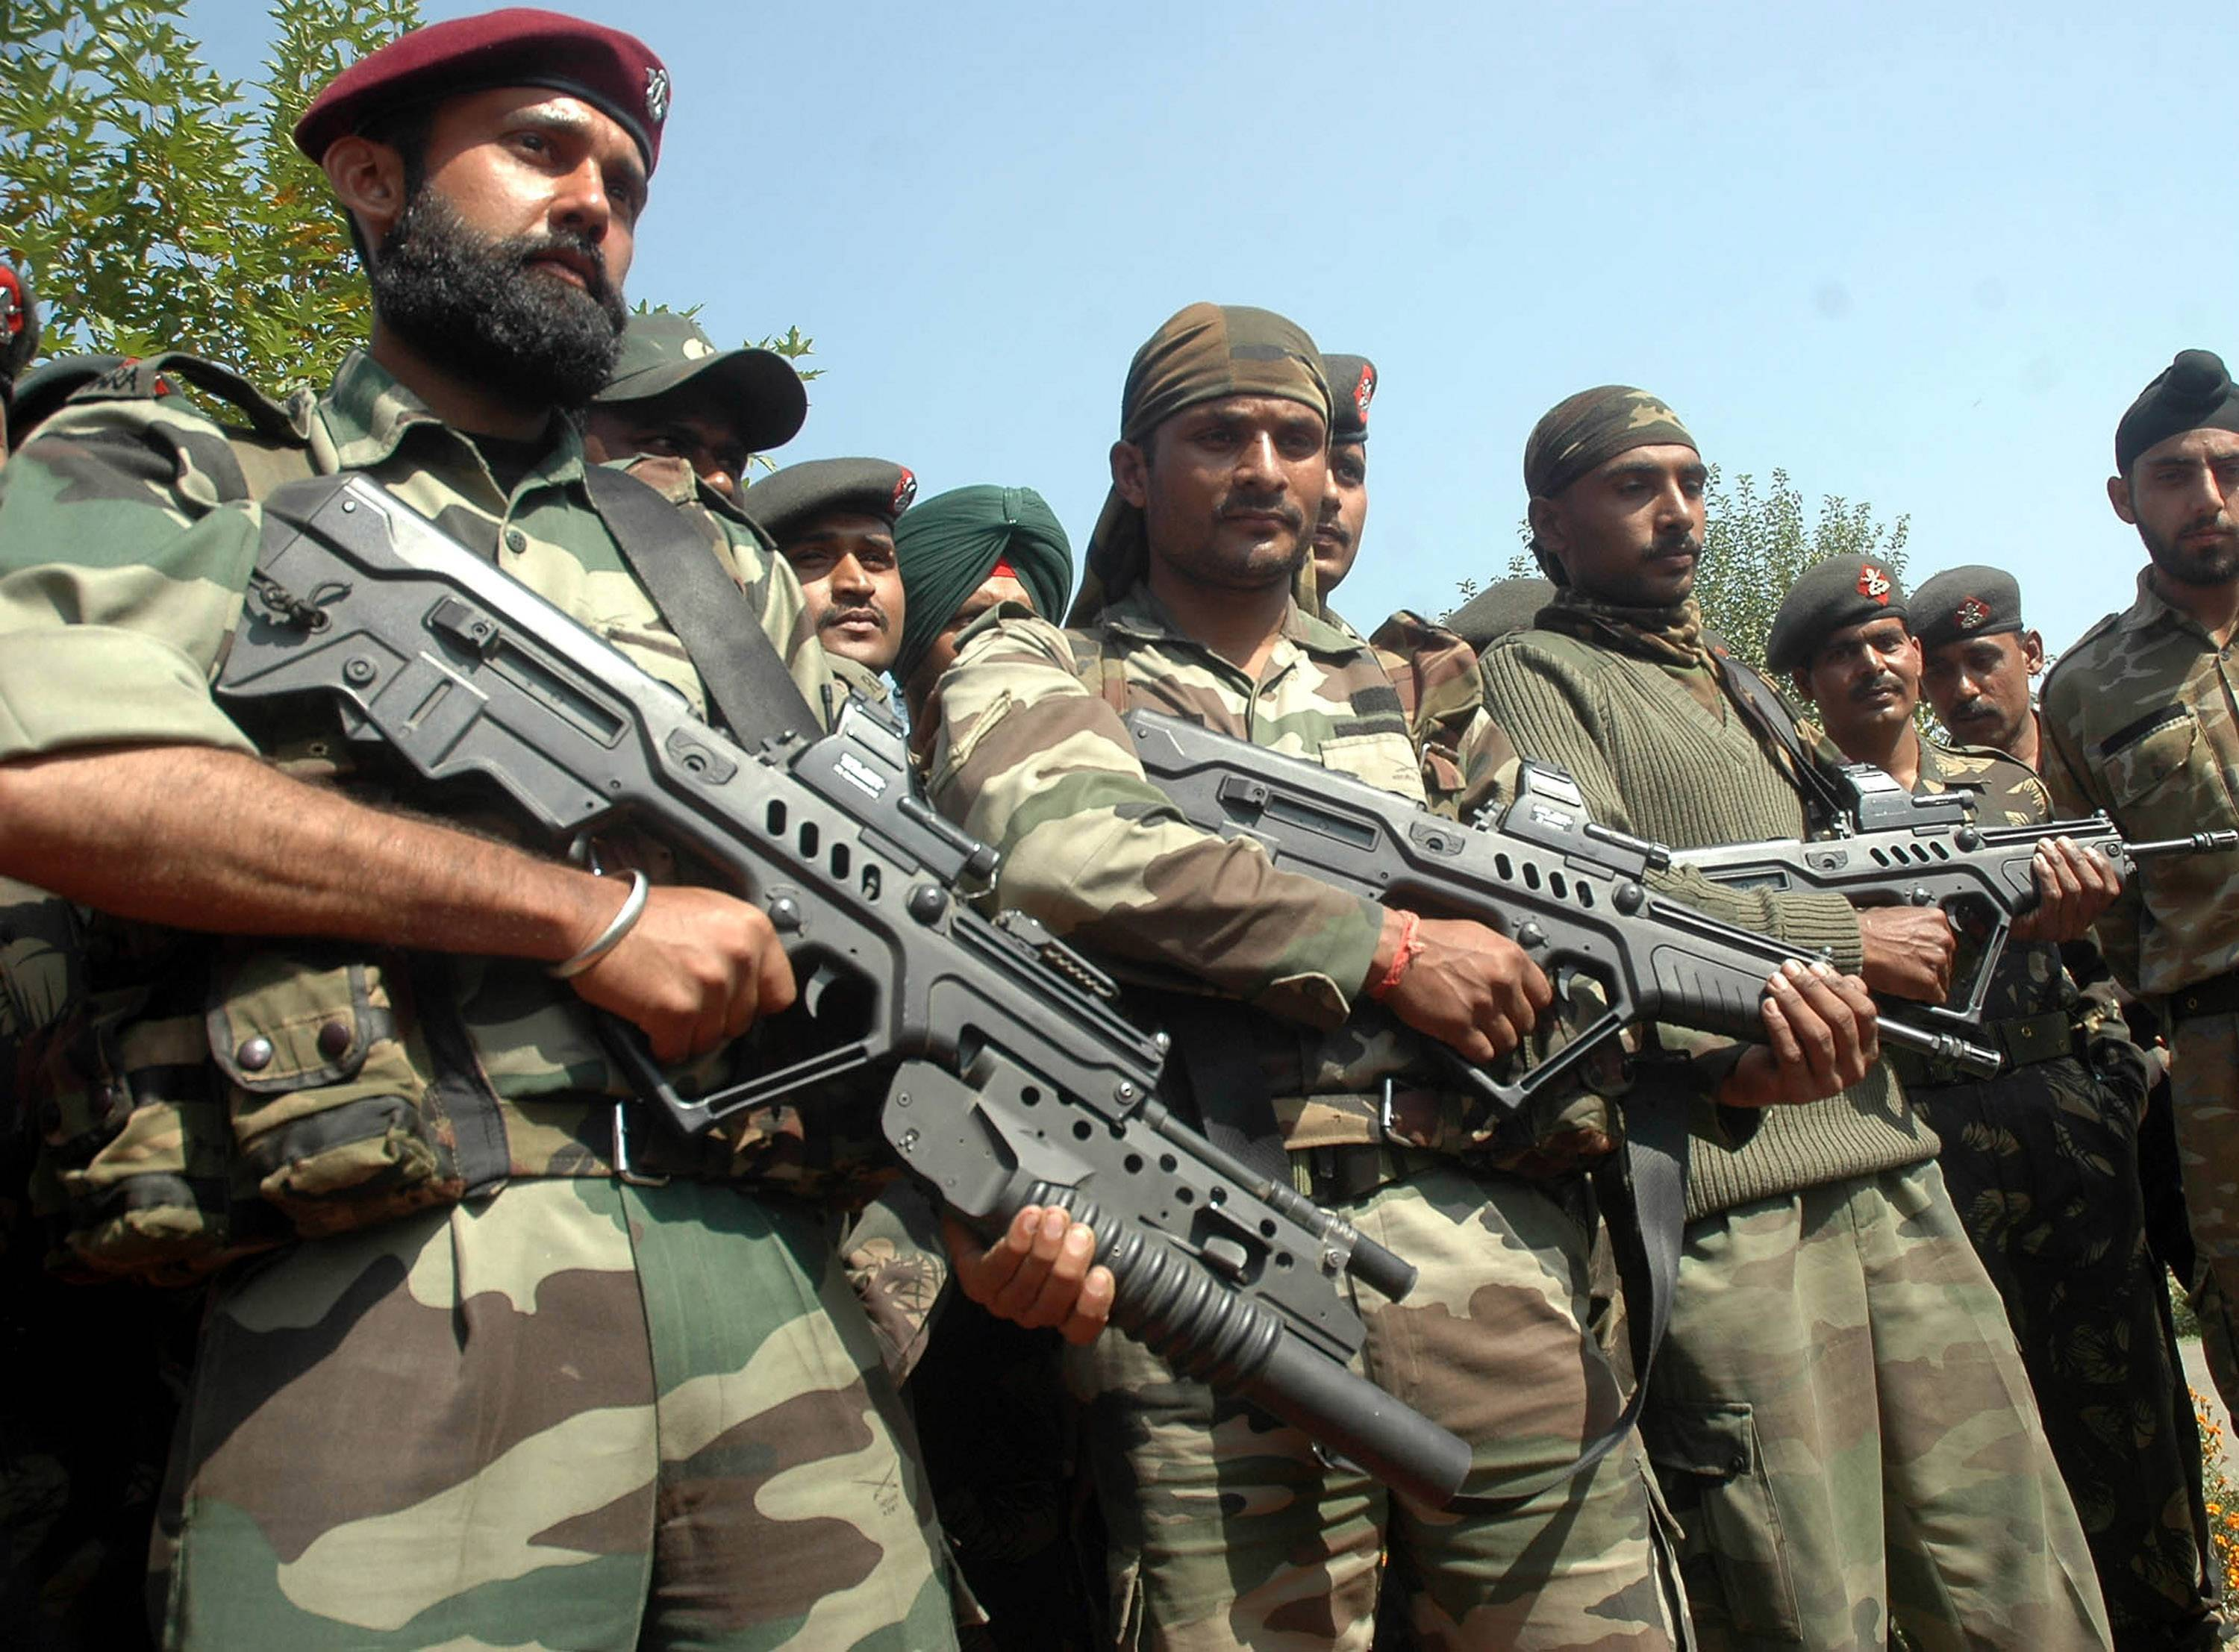 Para Special Forces Wikipedia Tavor Rifle Indian Army 2076859